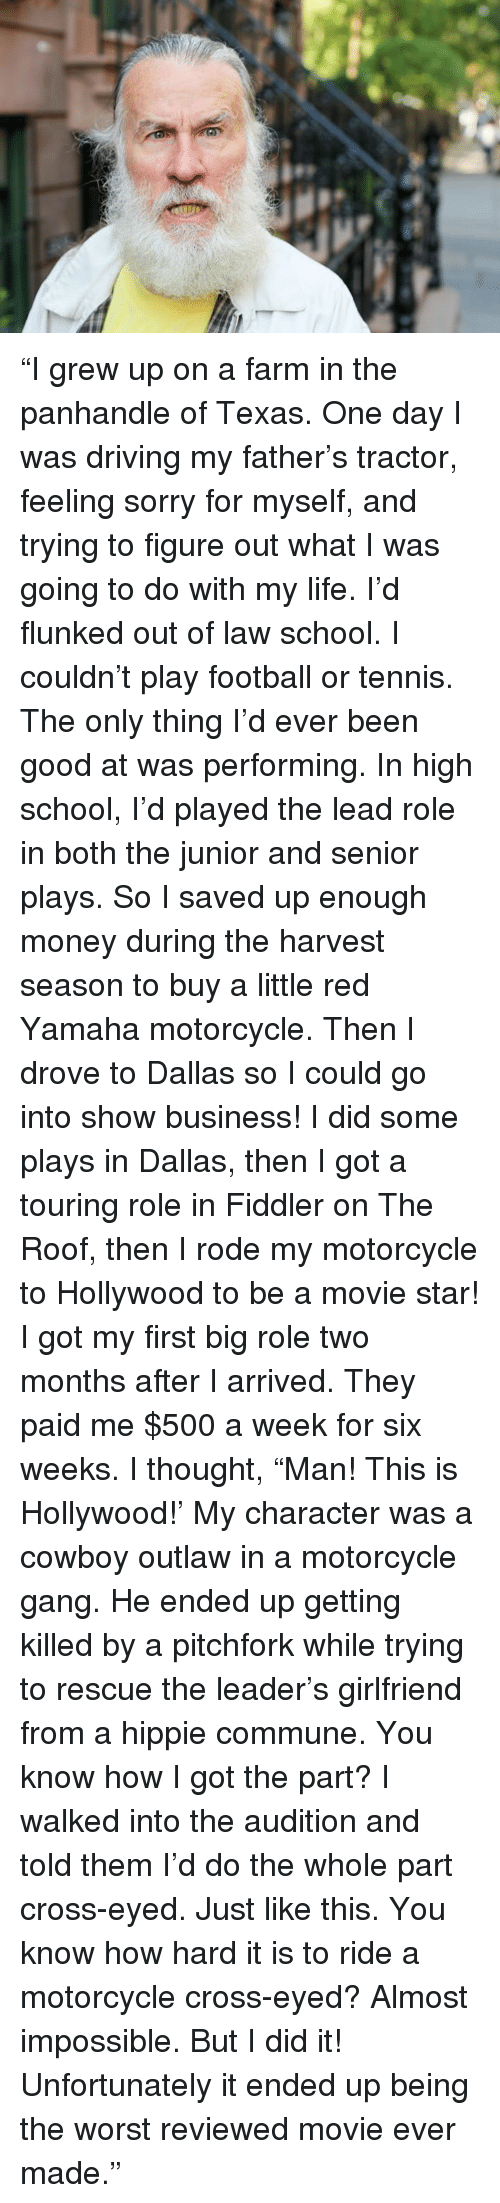 """Texas: """"I grew up on a farm in the panhandle of Texas.  One day I was driving my father's tractor, feeling sorry for myself, and trying to figure out what I was going to do with my life.  I'd flunked out of law school.  I couldn't play football or tennis.  The only thing I'd ever been good at was performing.  In high school, I'd played the lead role in both the junior and senior plays.  So I saved up enough money during the harvest season to buy a little red Yamaha motorcycle.  Then I drove to Dallas so I could go into show business!  I did some plays in Dallas, then I got a touring role in Fiddler on The Roof, then I rode my motorcycle to Hollywood to be a movie star!  I got my first big role two months after I arrived.  They paid me $500 a week for six weeks.  I thought, """"Man!  This is Hollywood!'  My character was a cowboy outlaw in a motorcycle gang.  He ended up getting killed by a pitchfork while trying to rescue the leader's girlfriend from a hippie commune.  You know how I got the part?  I walked into the audition and told them I'd do the whole part cross-eyed.  Just like this.  You know how hard it is to ride a motorcycle cross-eyed?  Almost impossible.  But I did it!  Unfortunately it ended up being the worst reviewed movie ever made."""""""